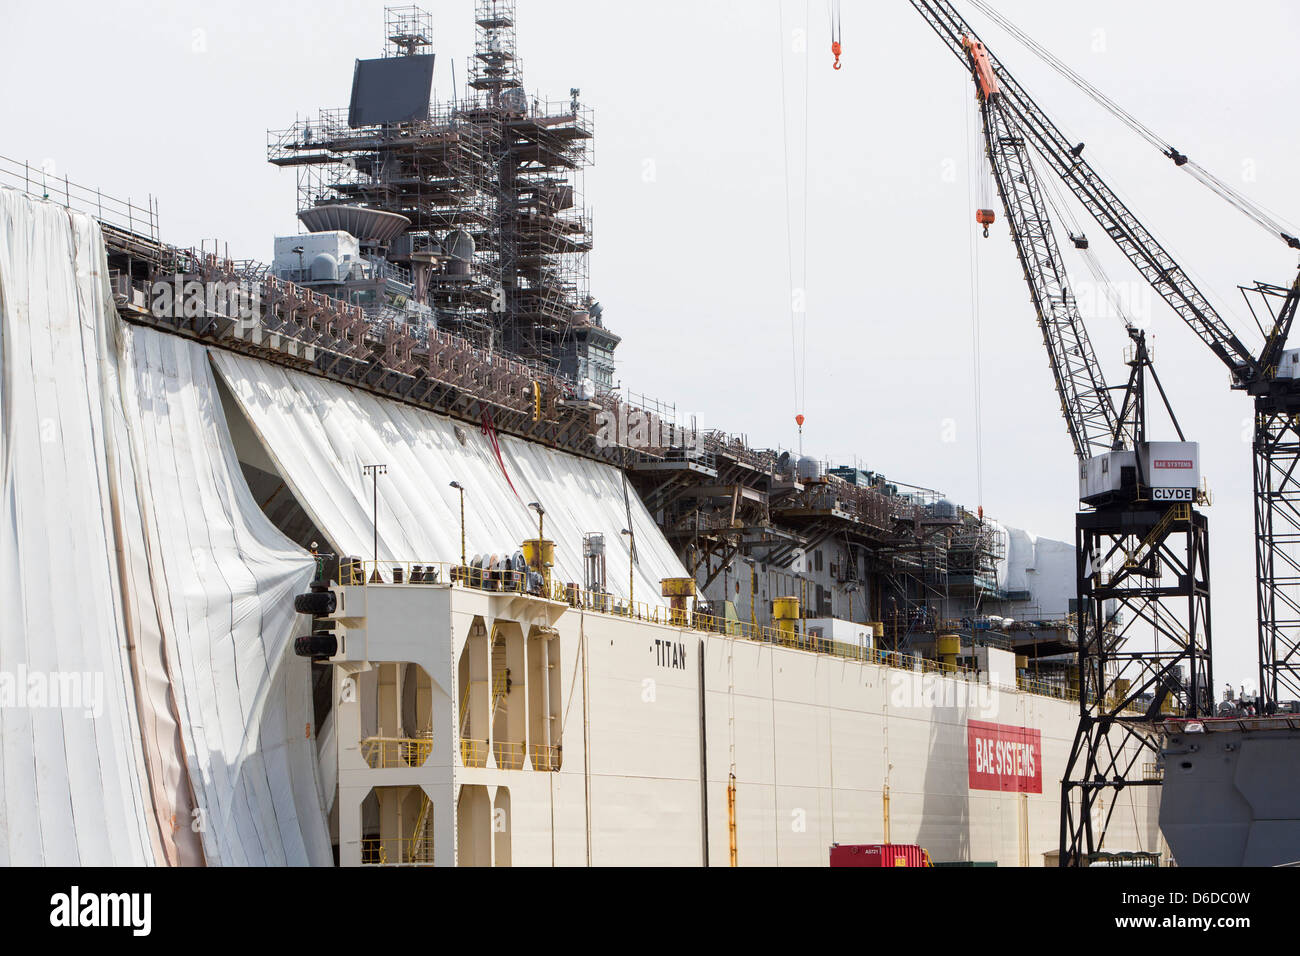 United States Navy ships under repair in the BAE systems shipyard in Norfolk, Virginia - Stock Image